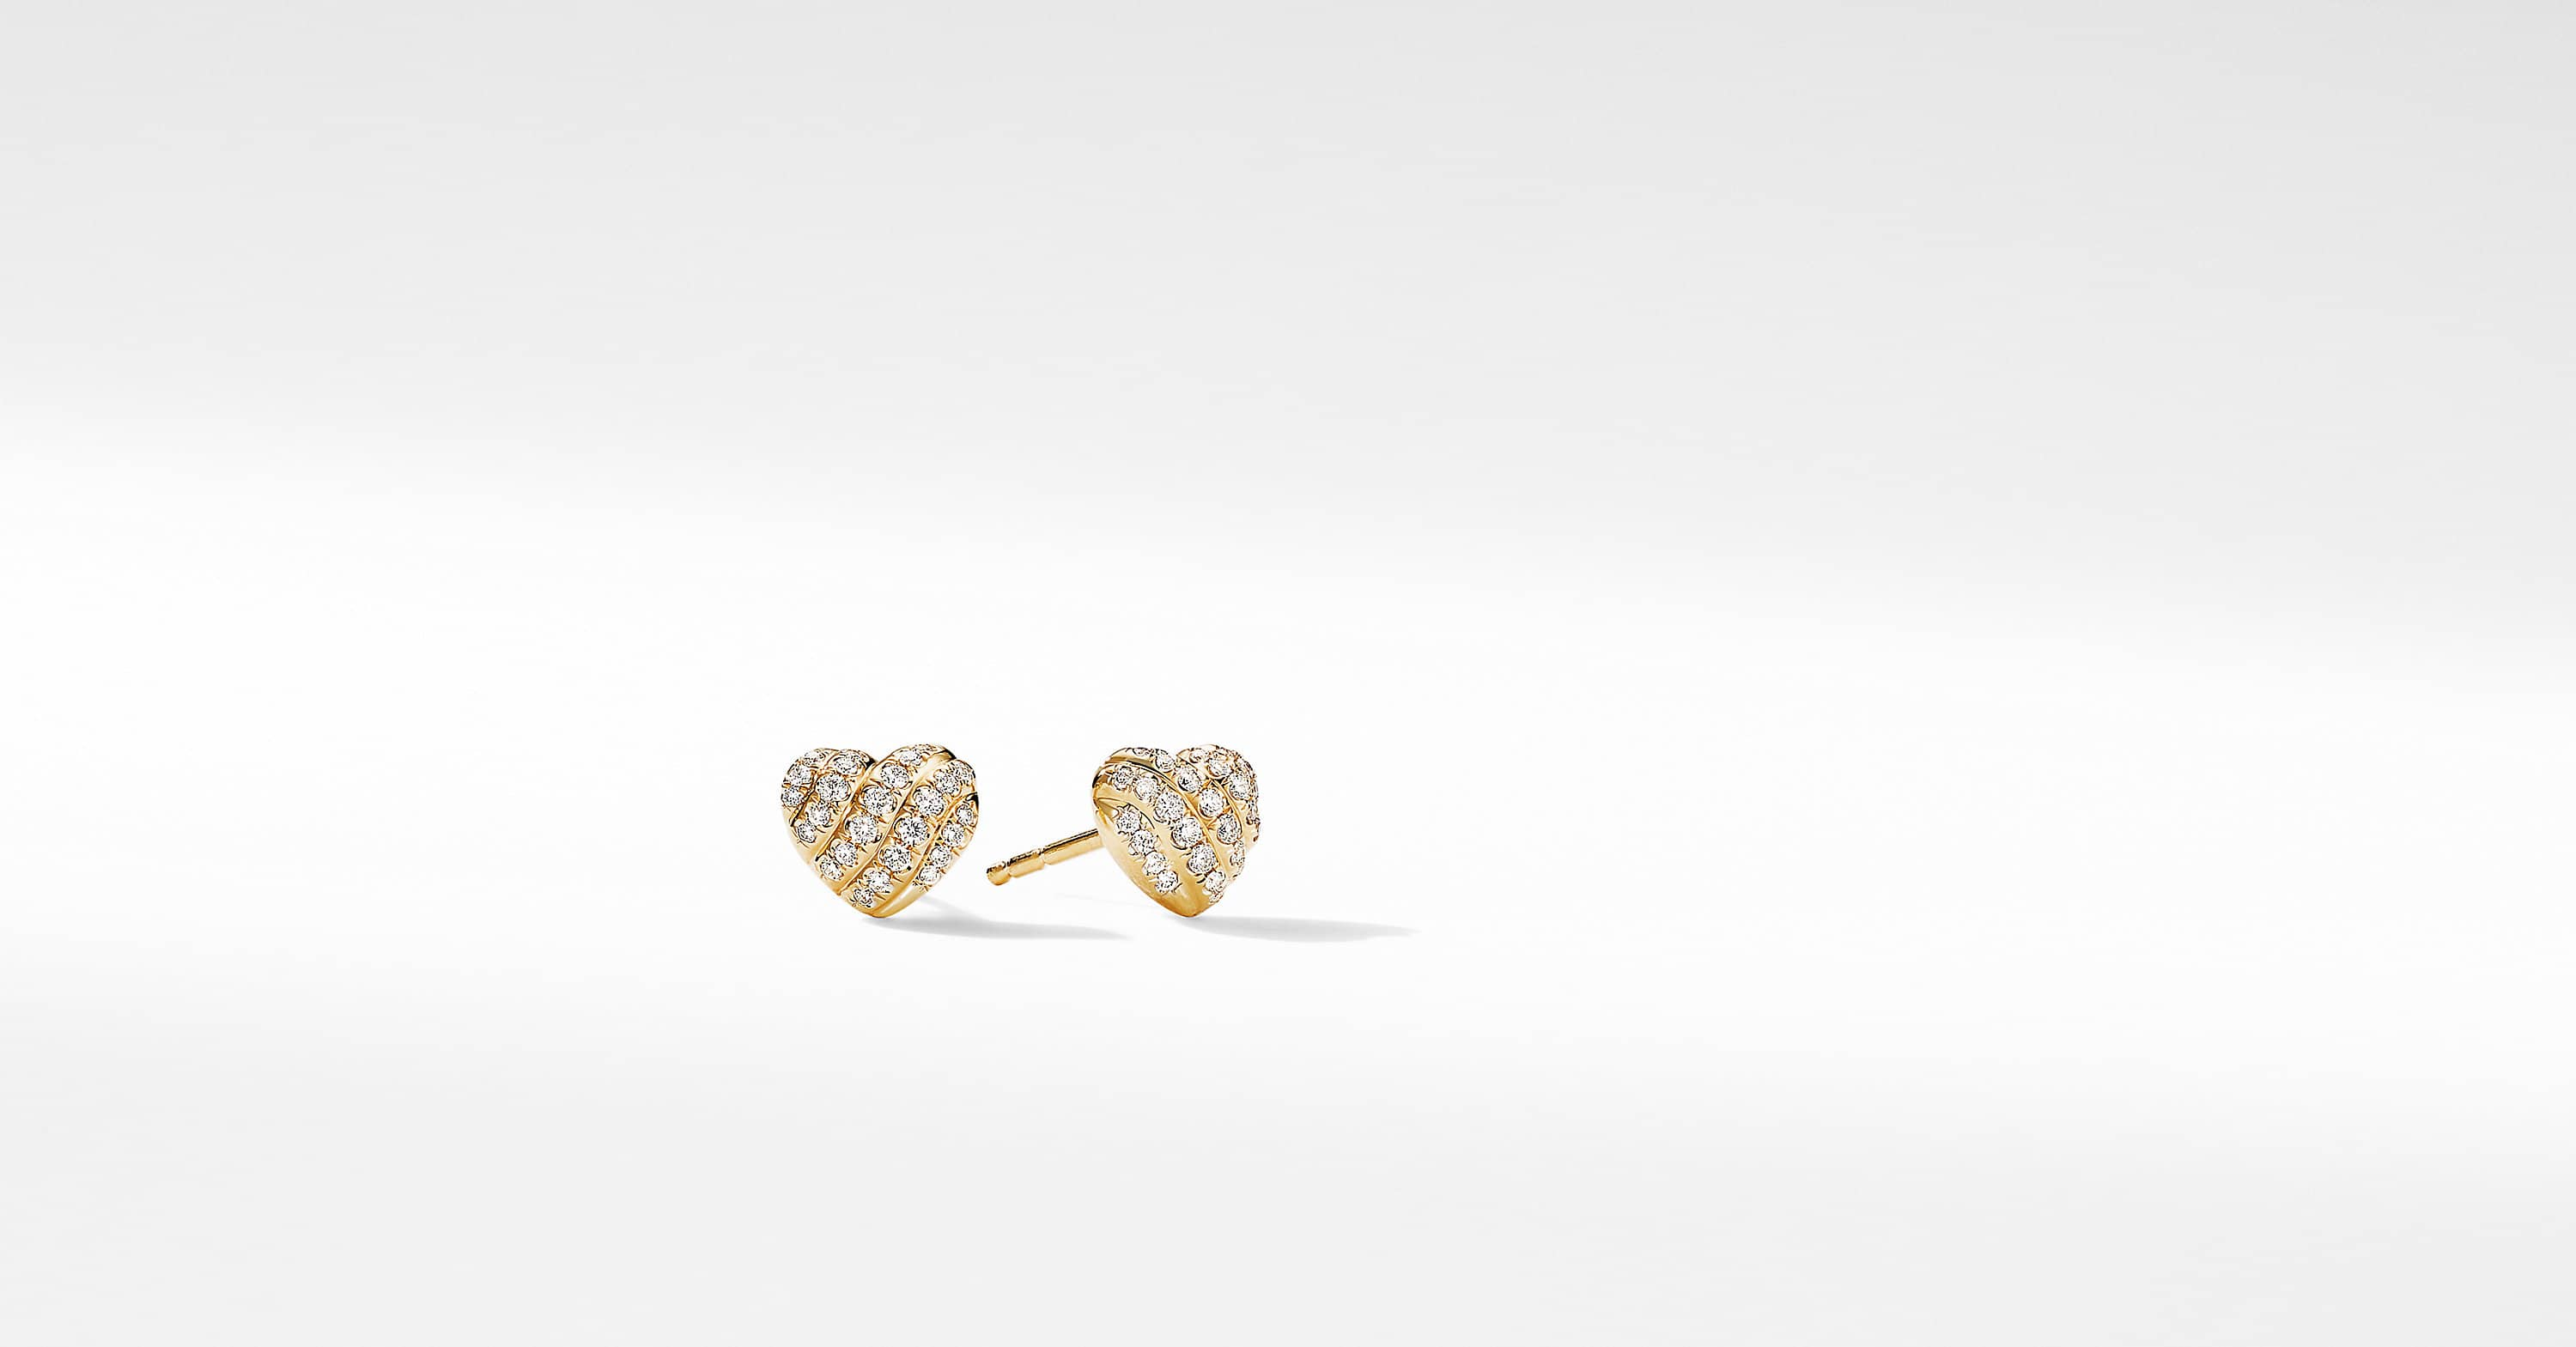 Heart Stud Earrings in 18K Yellow Gold with Pavé